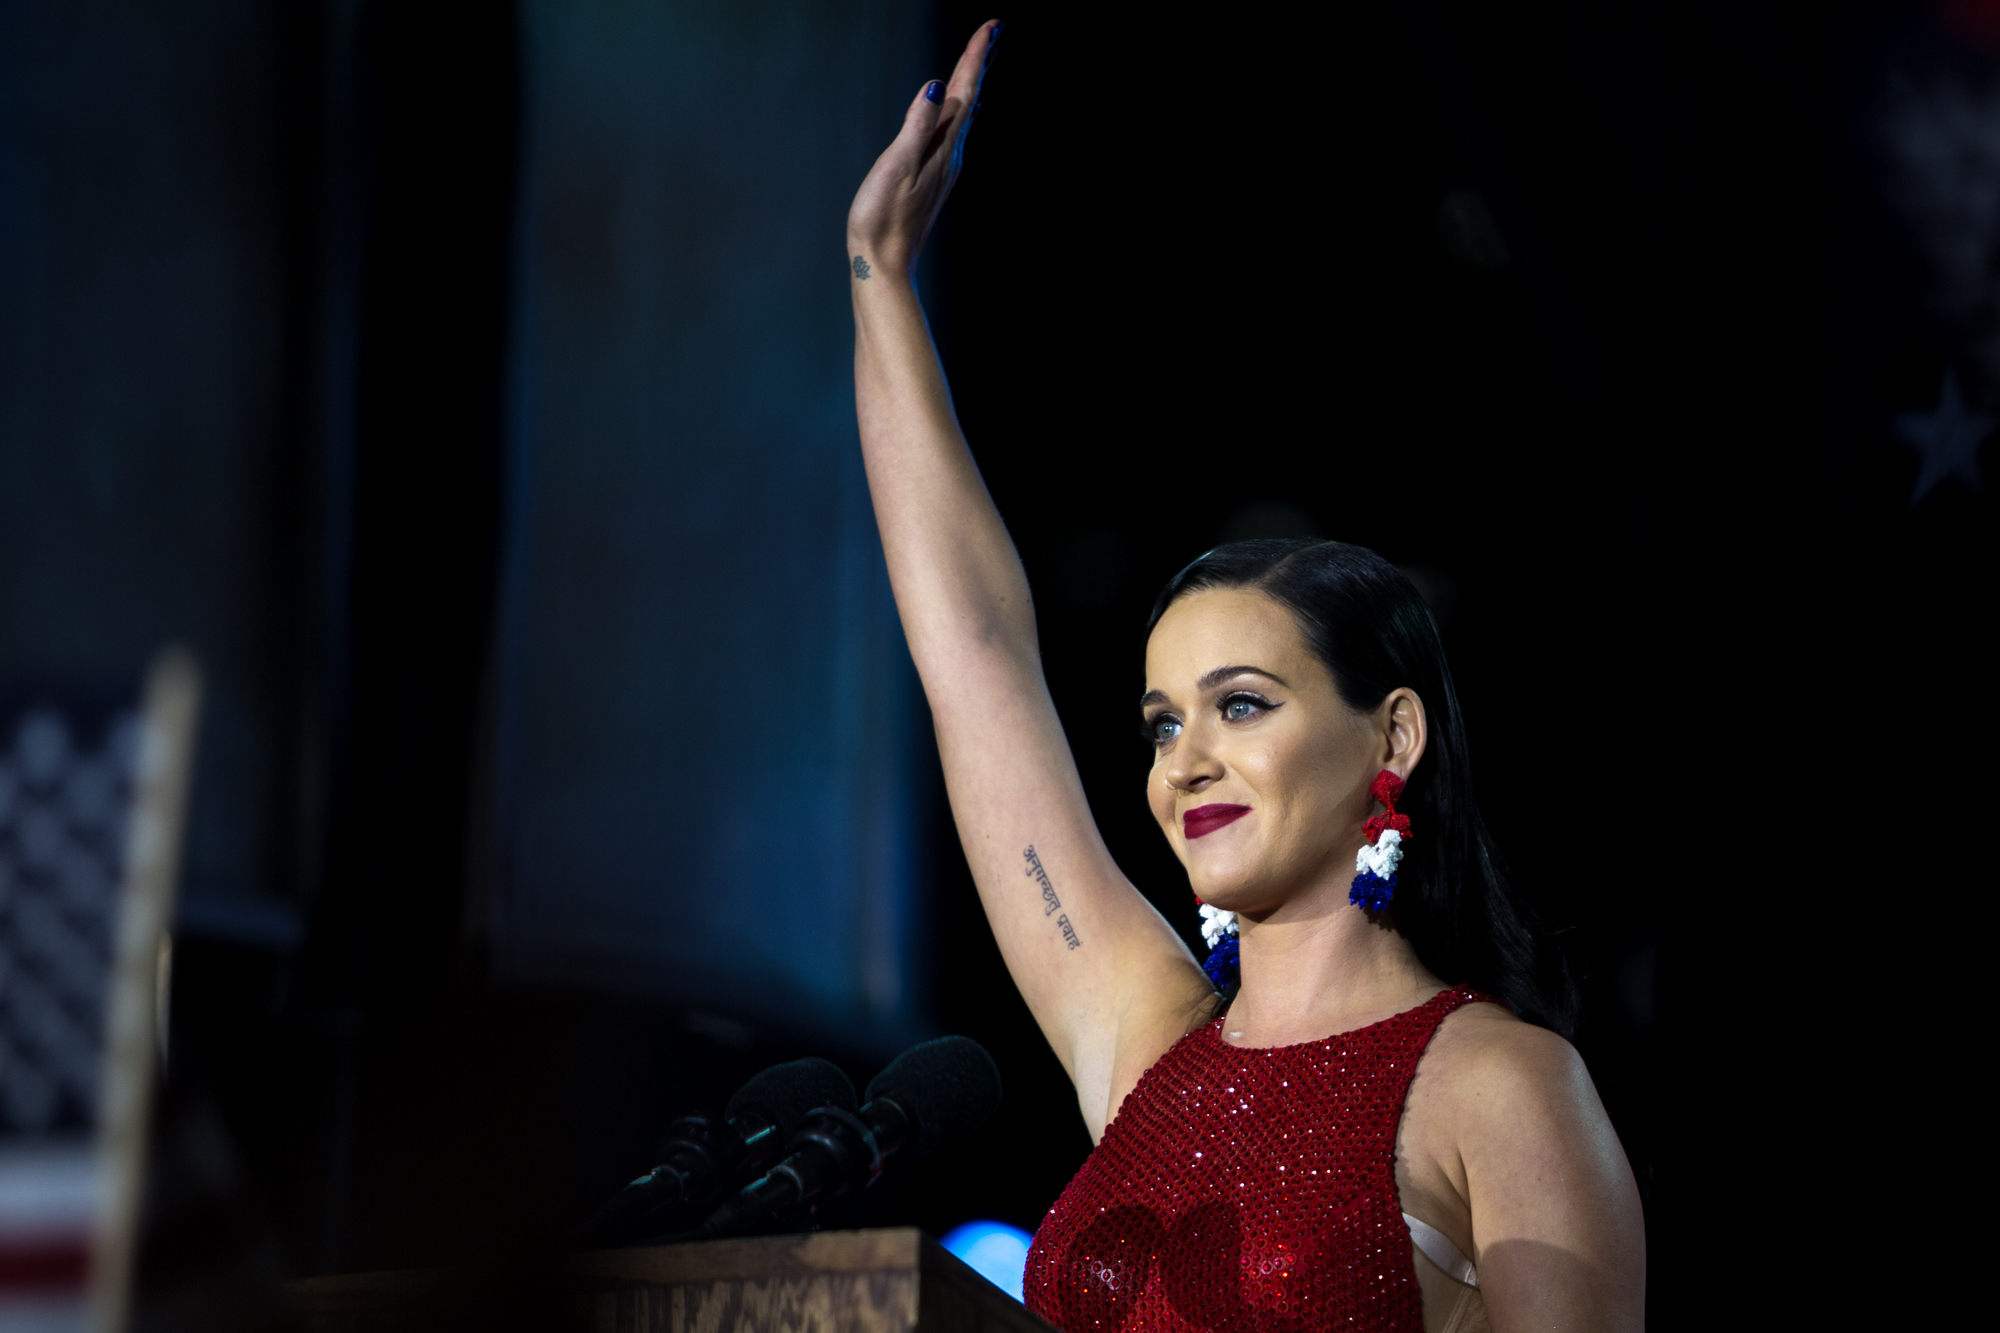 """Singer-songwriter Katy Perry addresses the audience outside the Jacob K. Javits center, Nov. 8, 2016. Hillary Clinton's Election Day Event took place mainly inside the venue, but speakers took the stage at a block party event open to the public. Perry said her parents voted for Trump. """"But you know what?We will still all be sitting at the same table for Thanksgiving,"""" she said."""